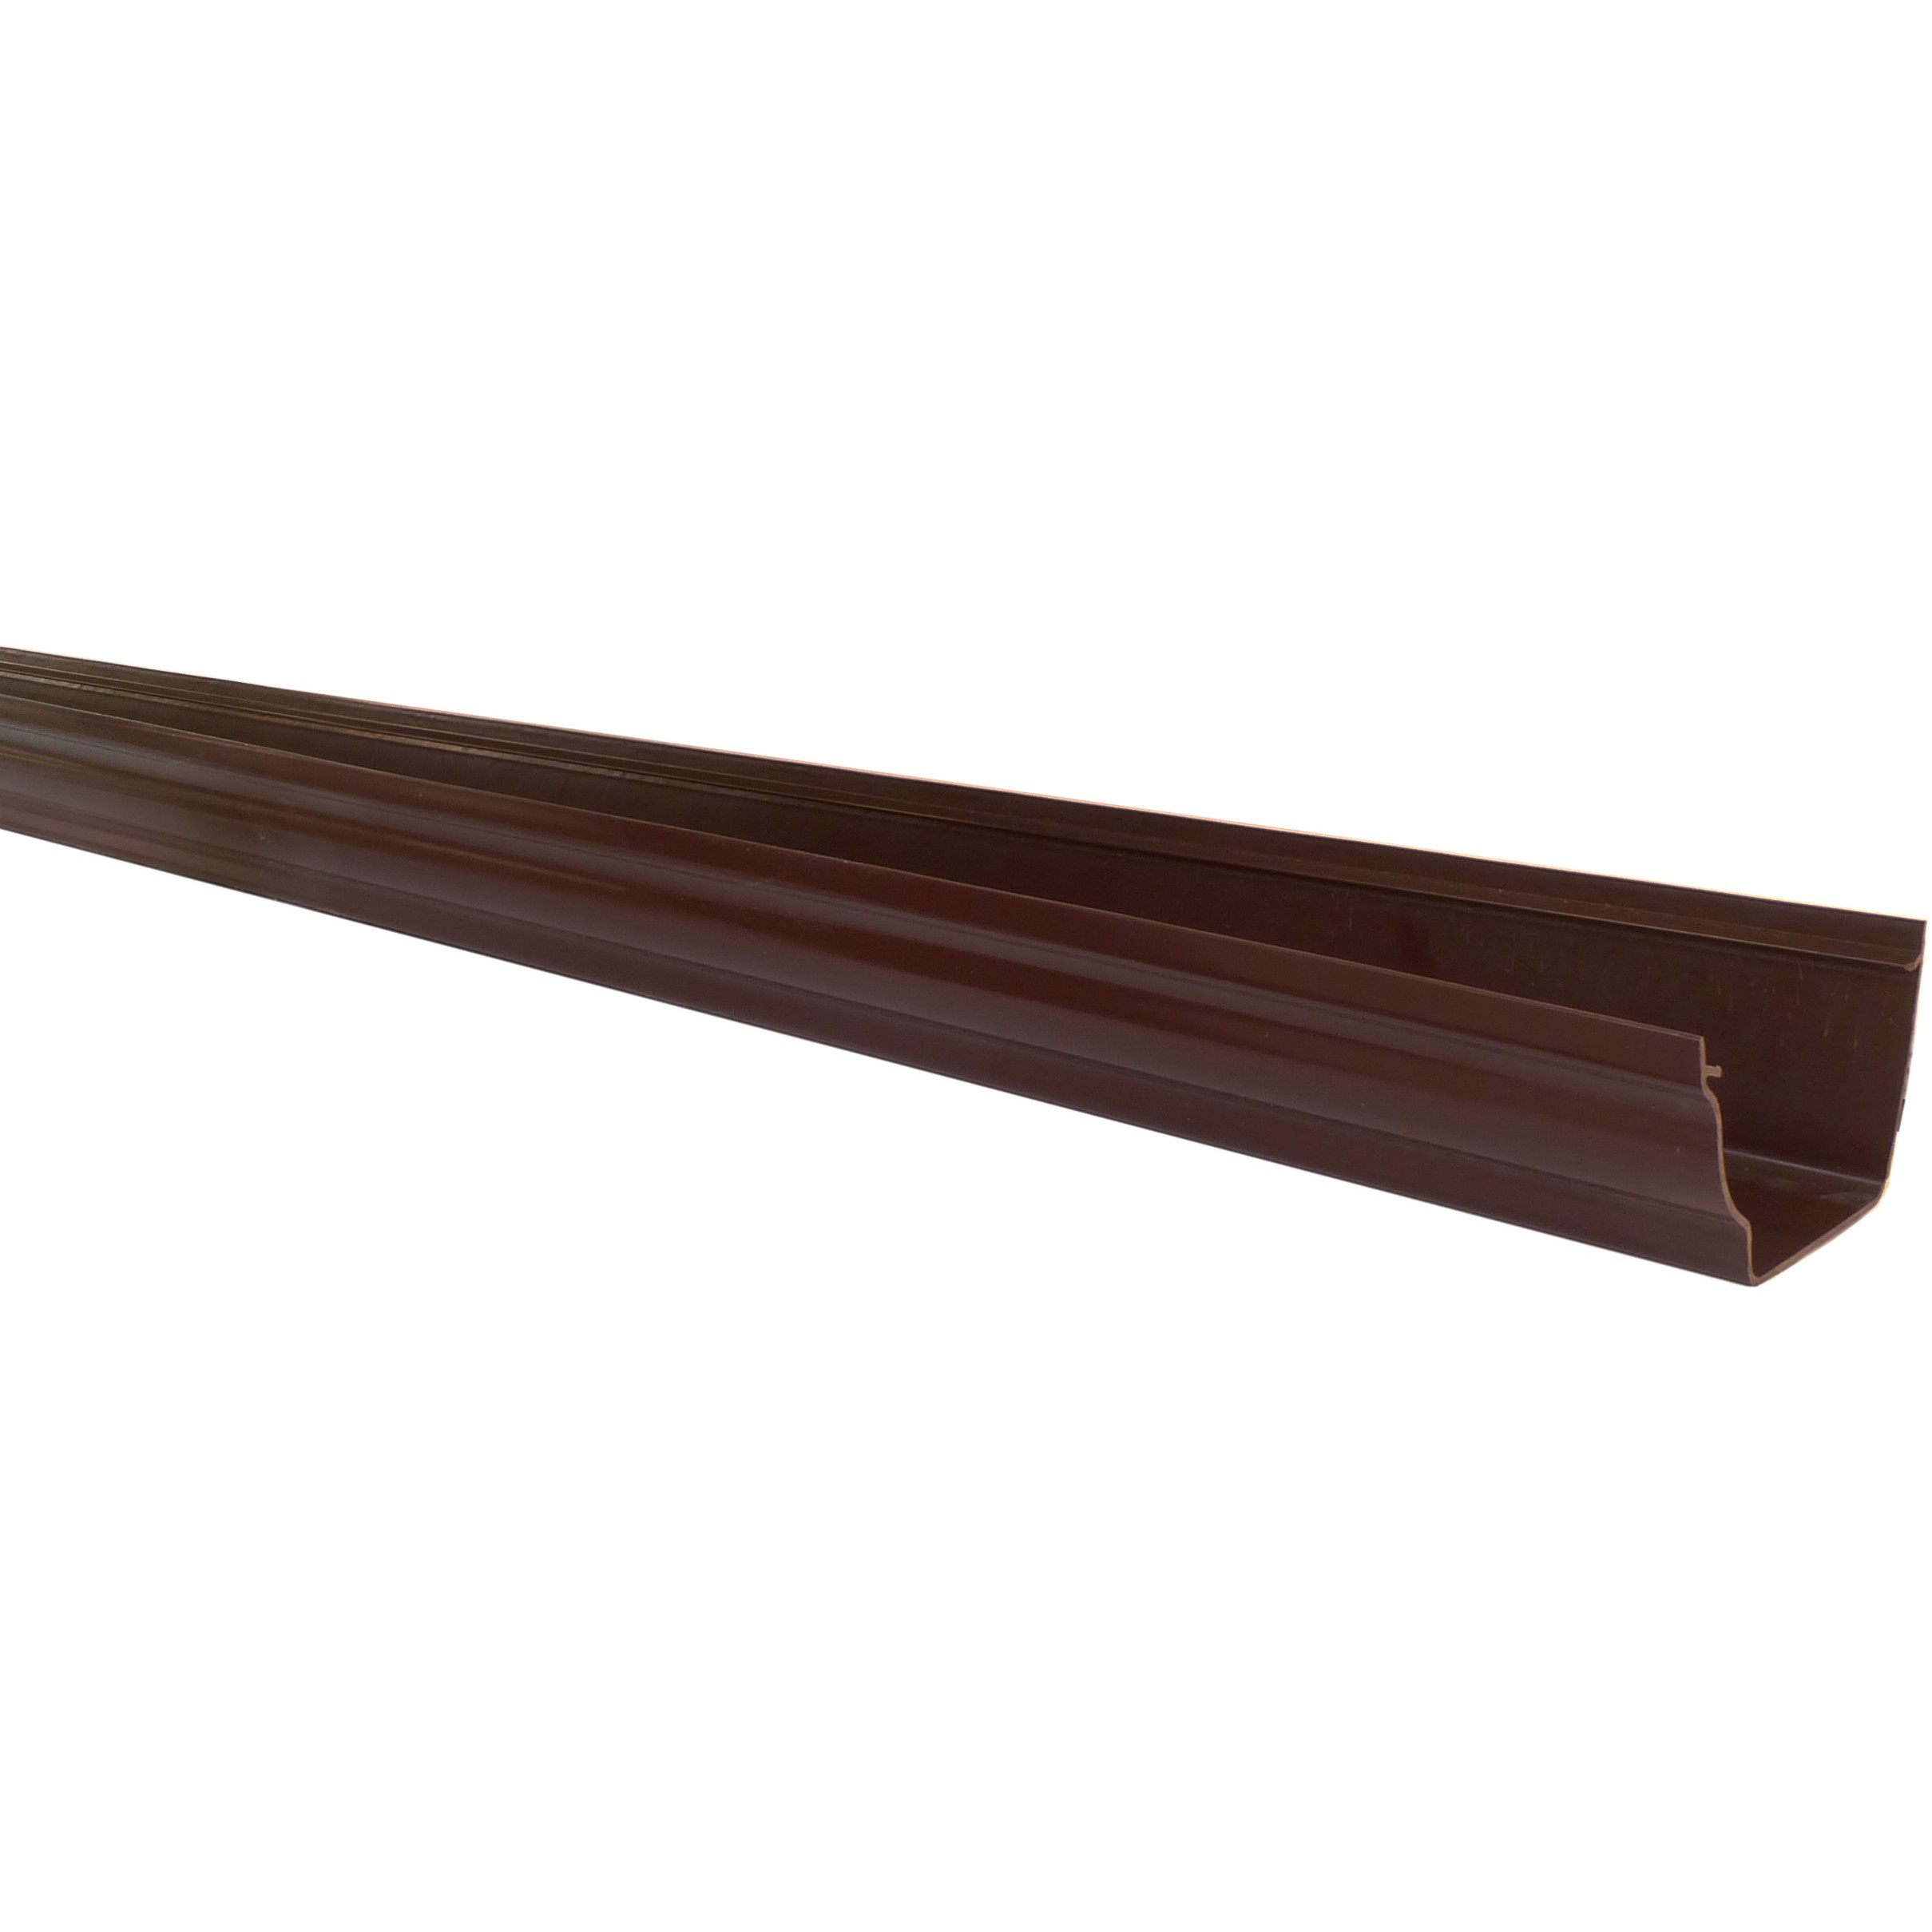 Polypipe 117mm Sovereign High Capacity Gutter - Brown, 2 metre